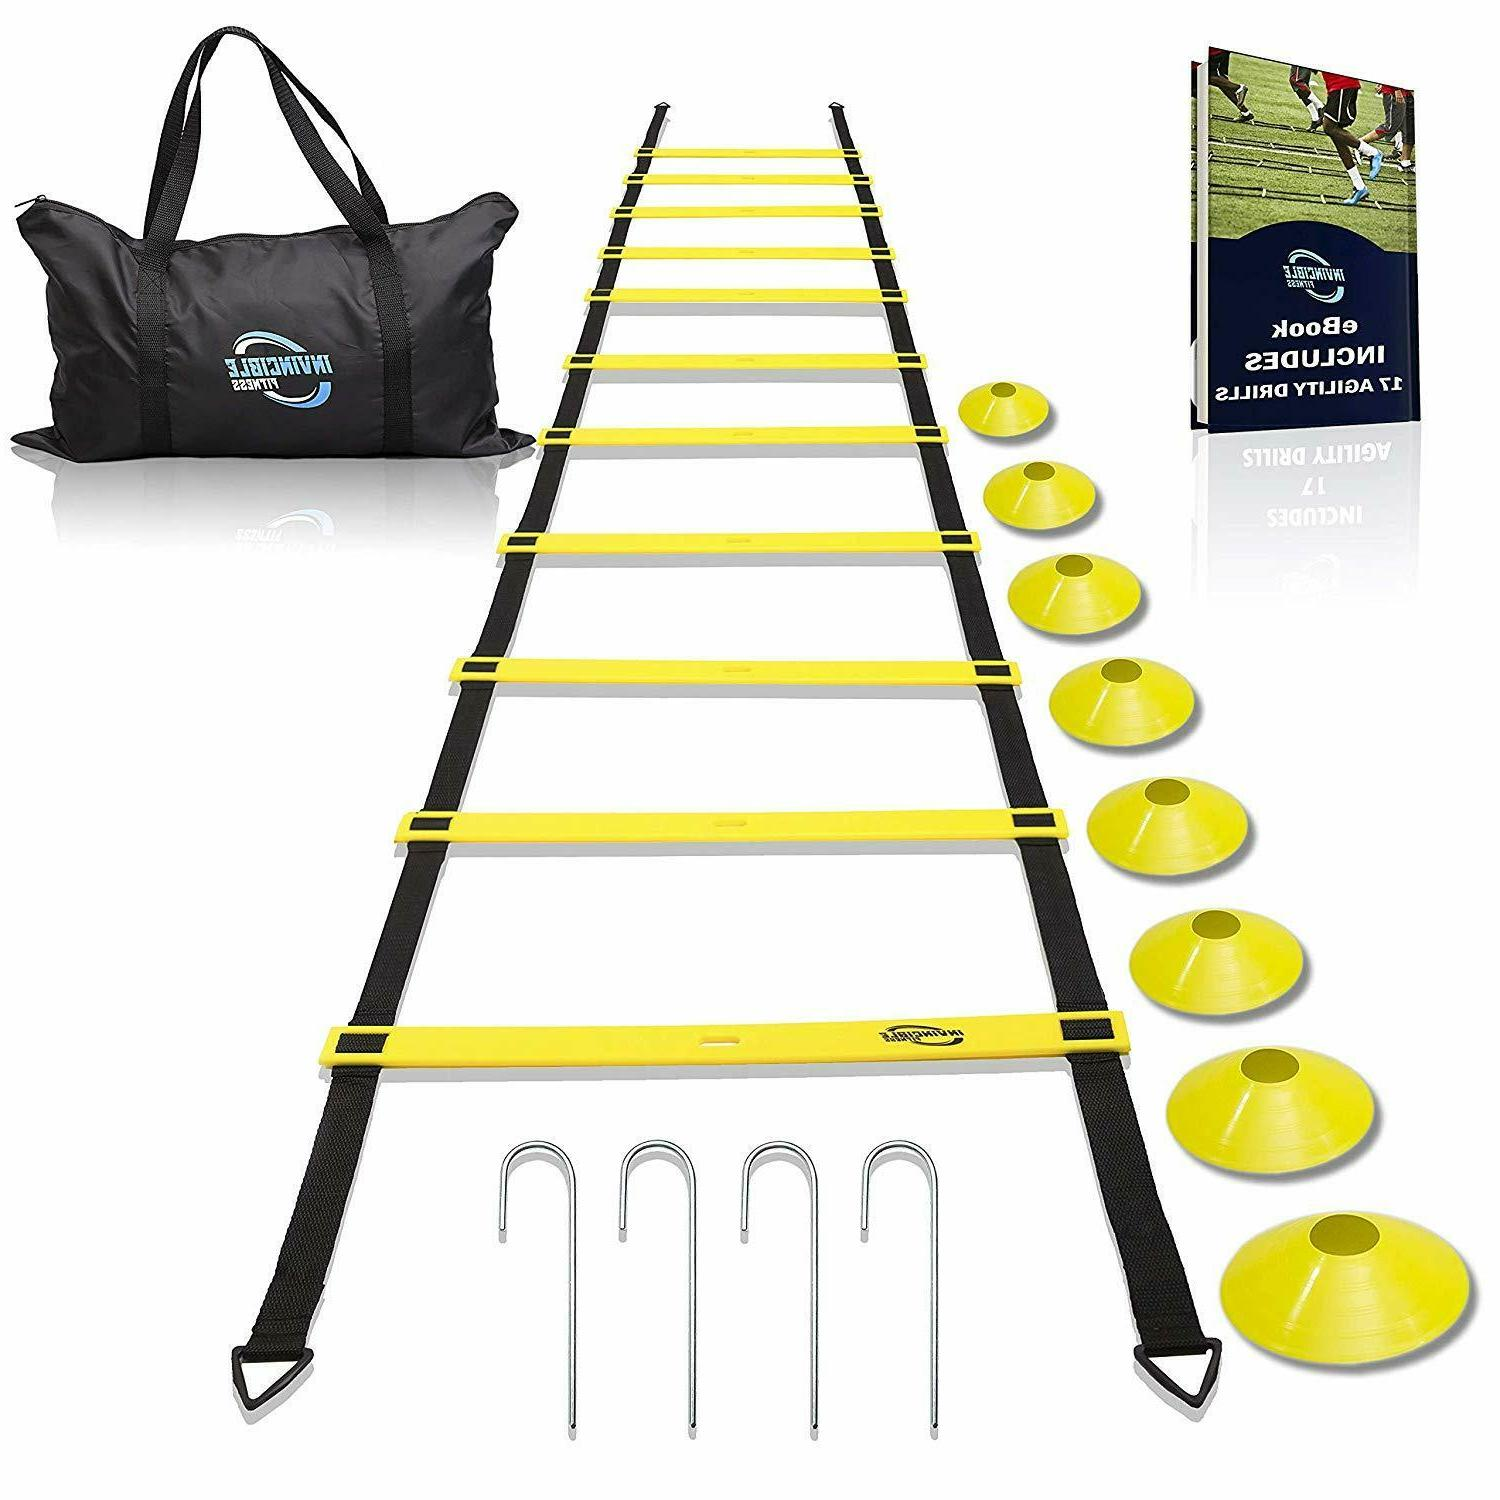 Agility Ladder Training Equipment Football Cones